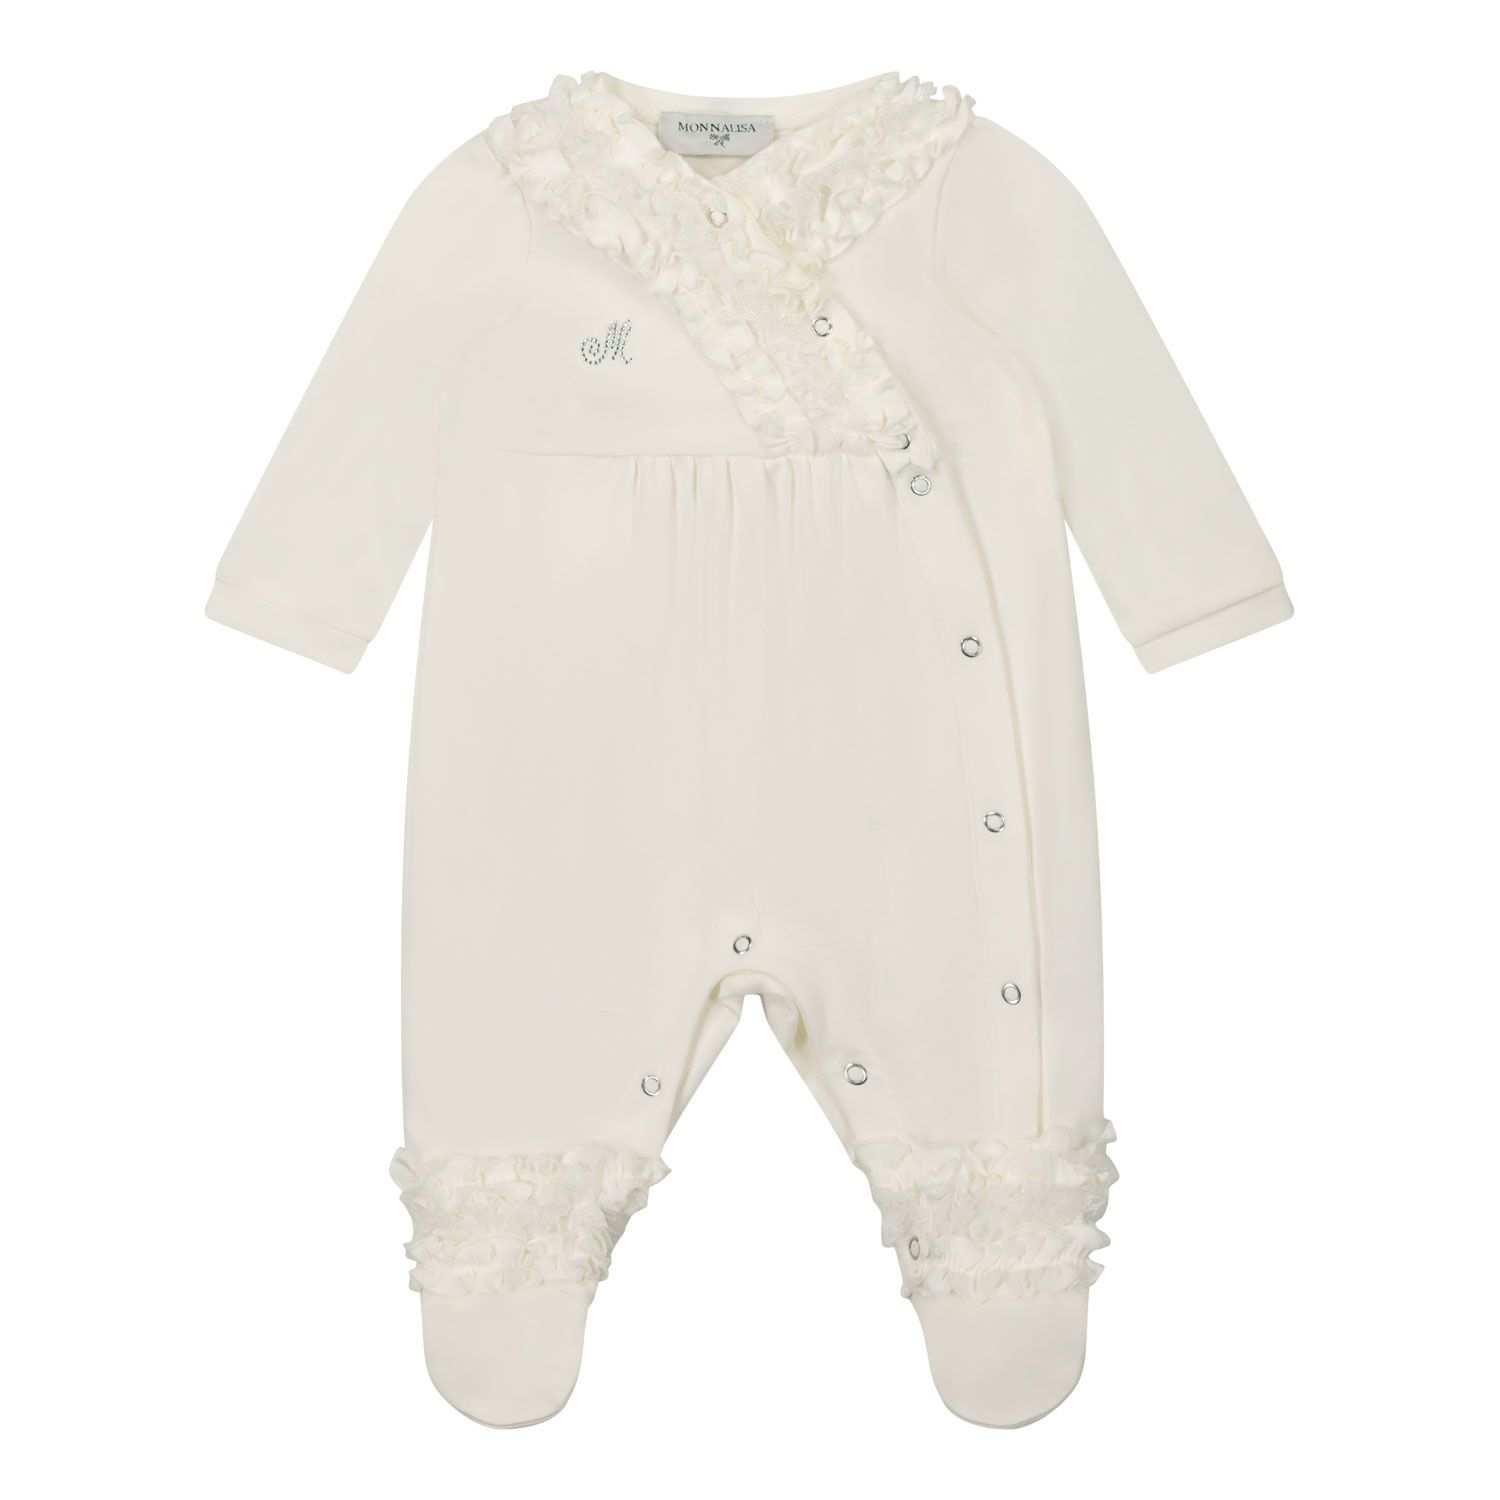 Picture of MonnaLisa 357205 baby playsuit off white